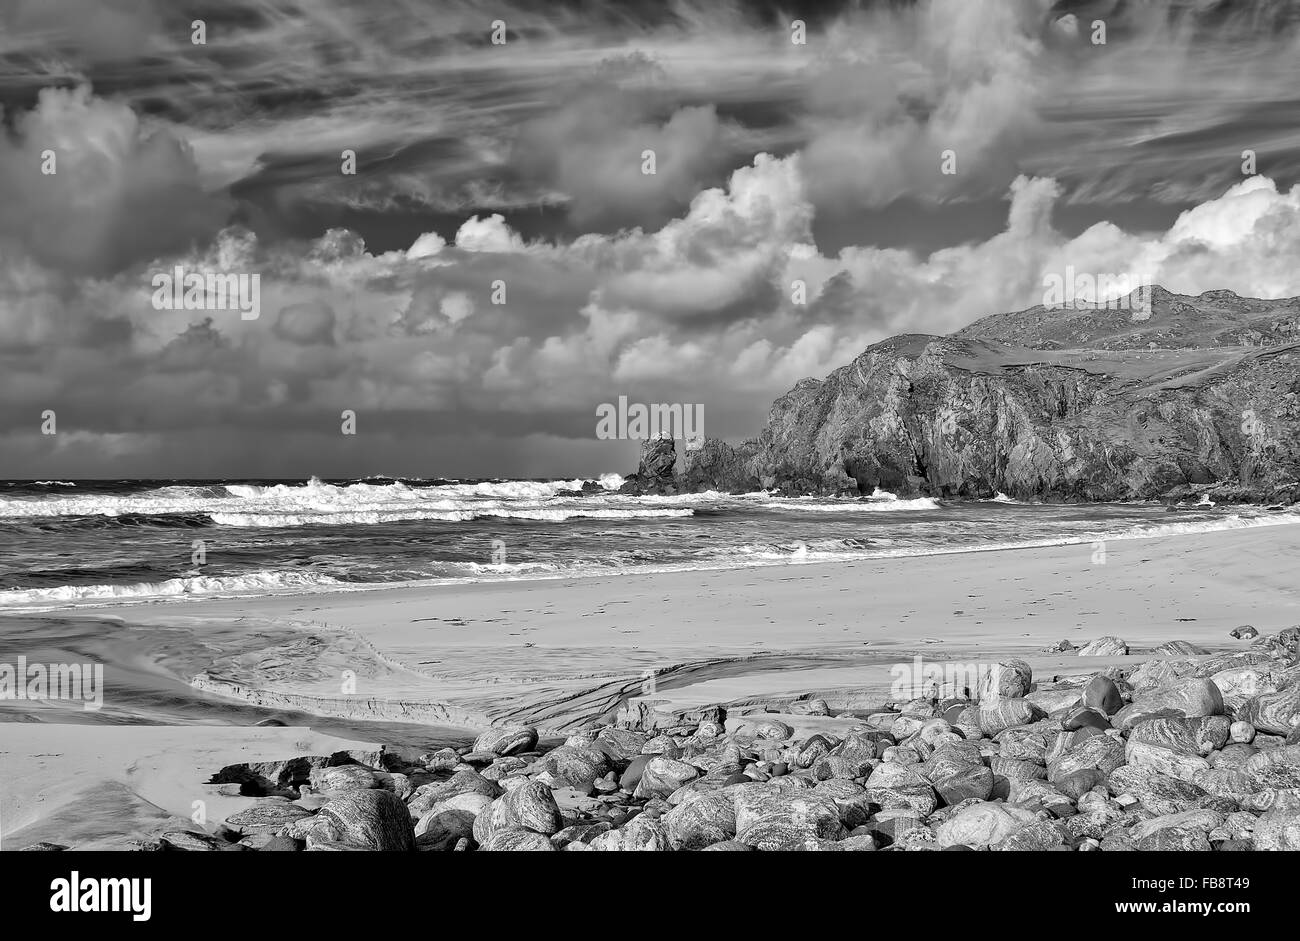 A stormy day on the coast of the Outer Hebrides in Scotland. - Stock Image